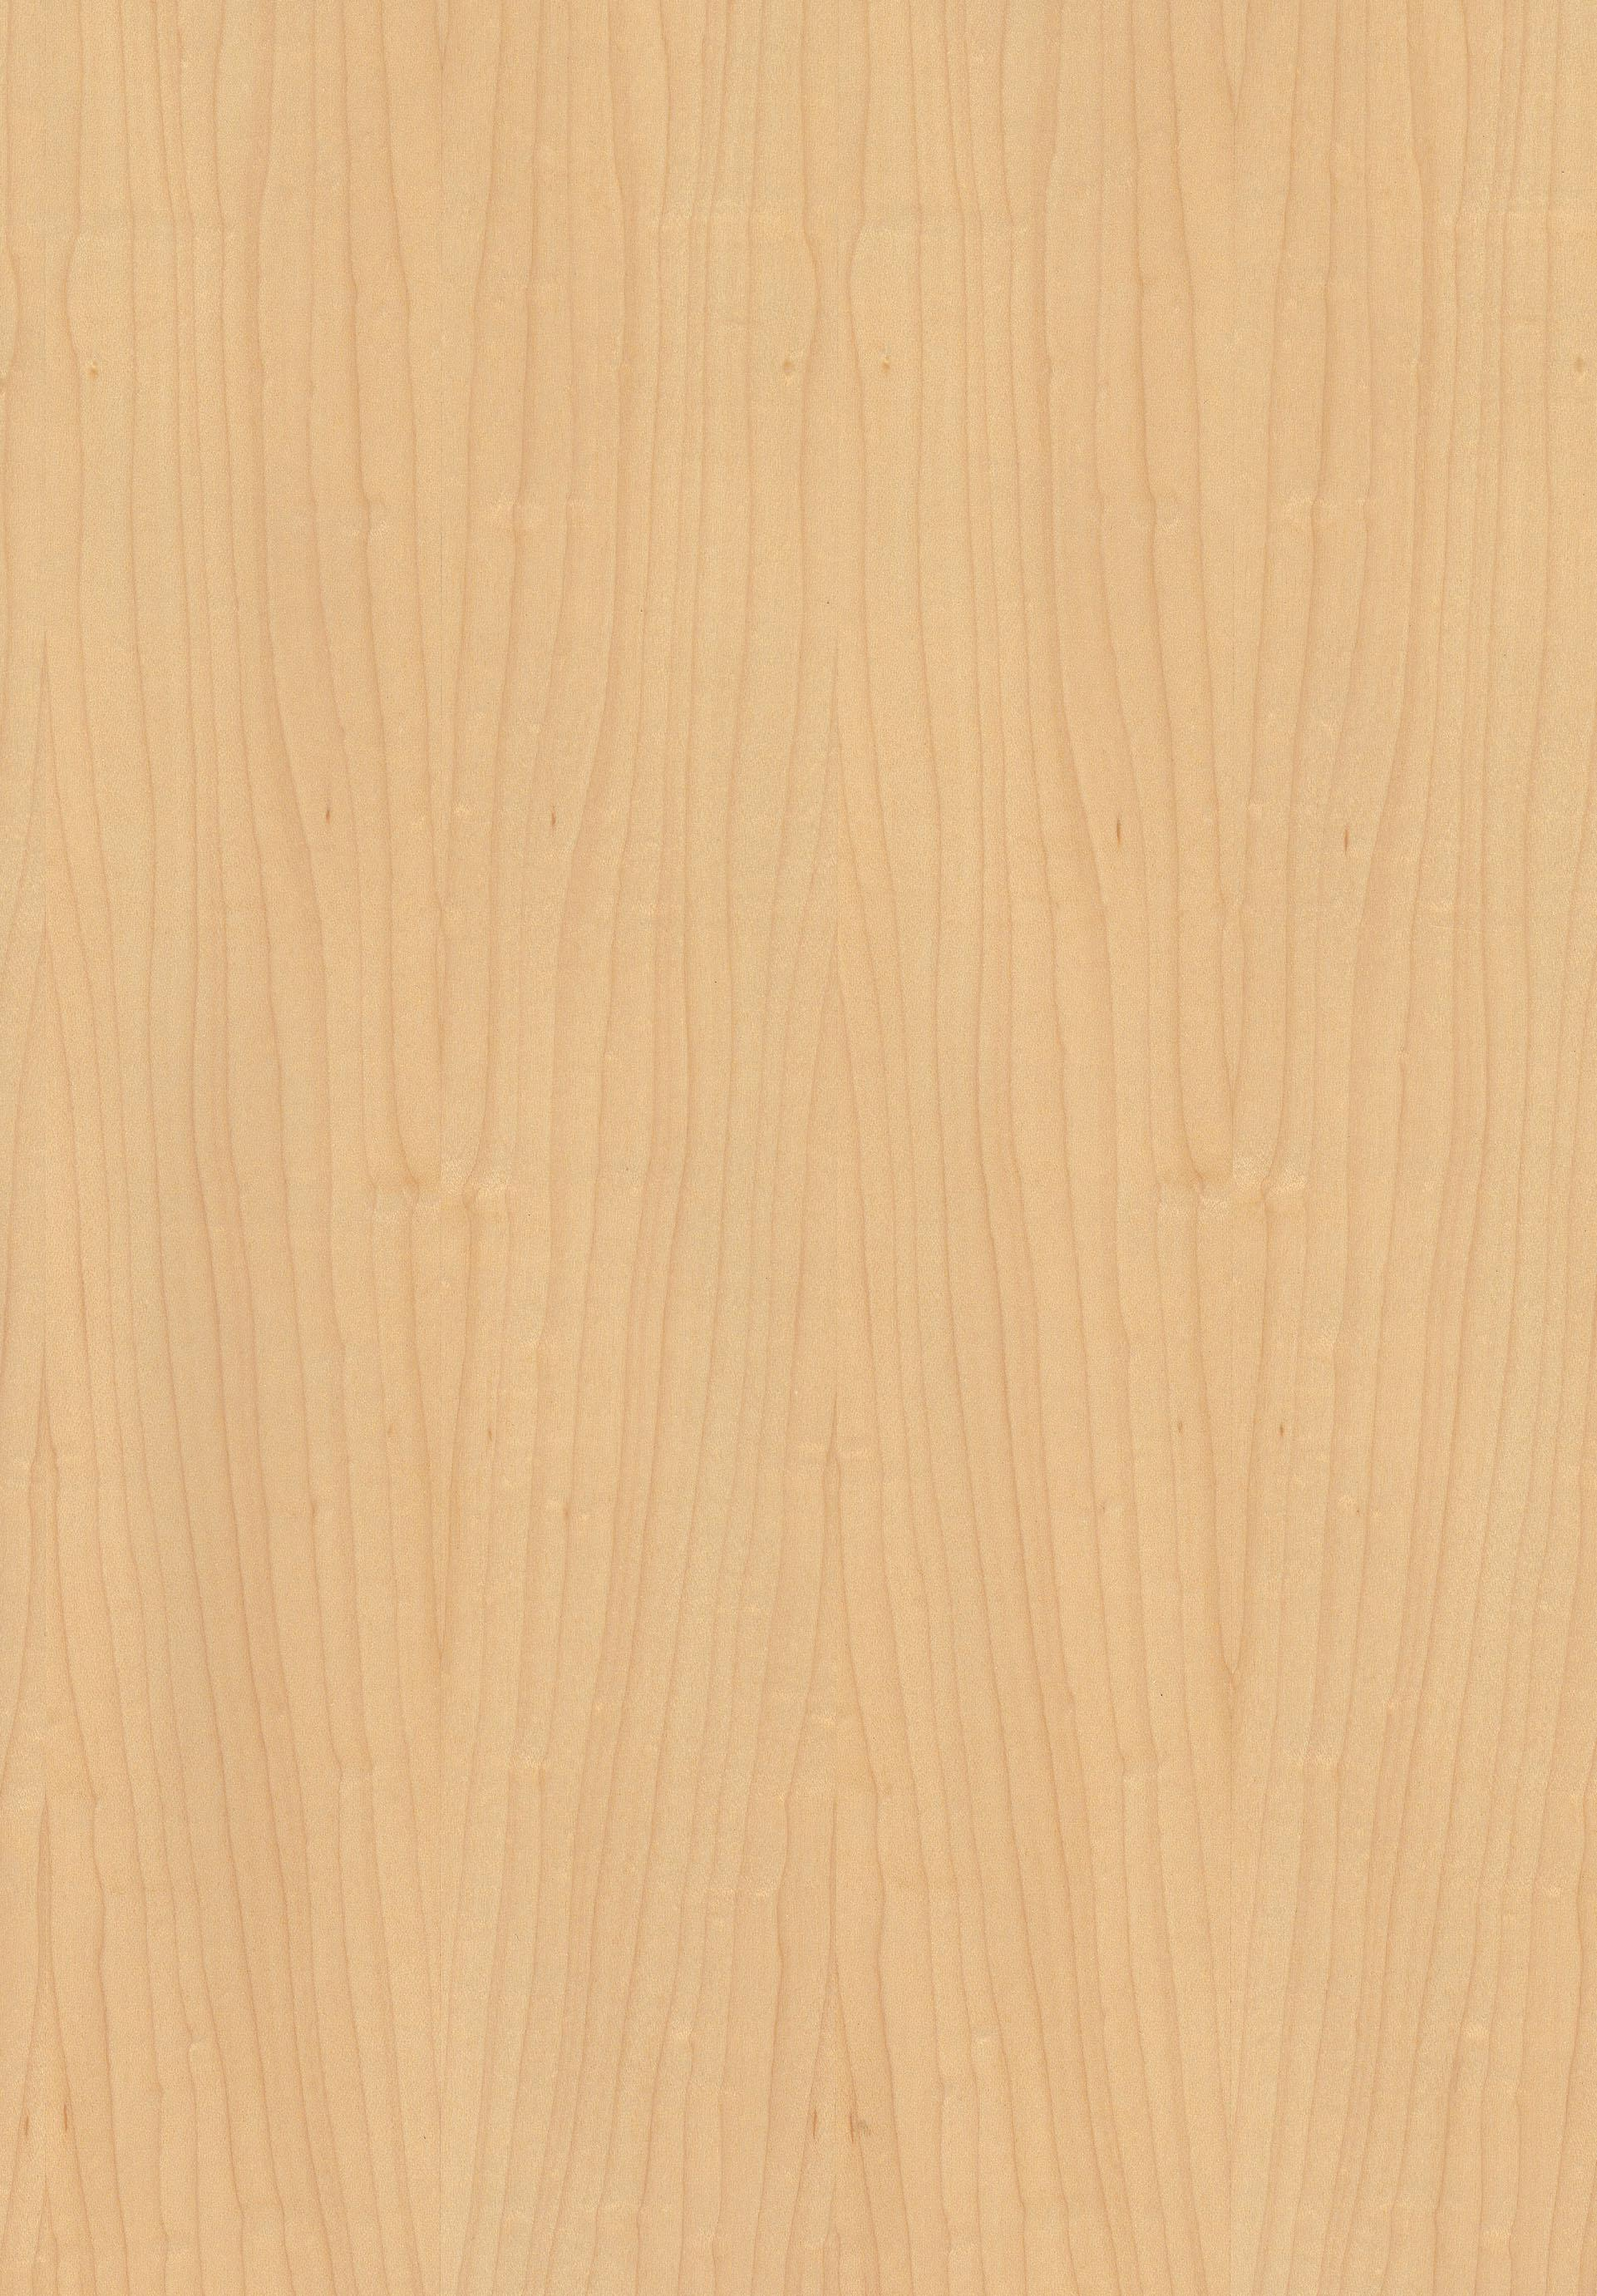 Fancy Decorative Plywood Maple American Hard Maple